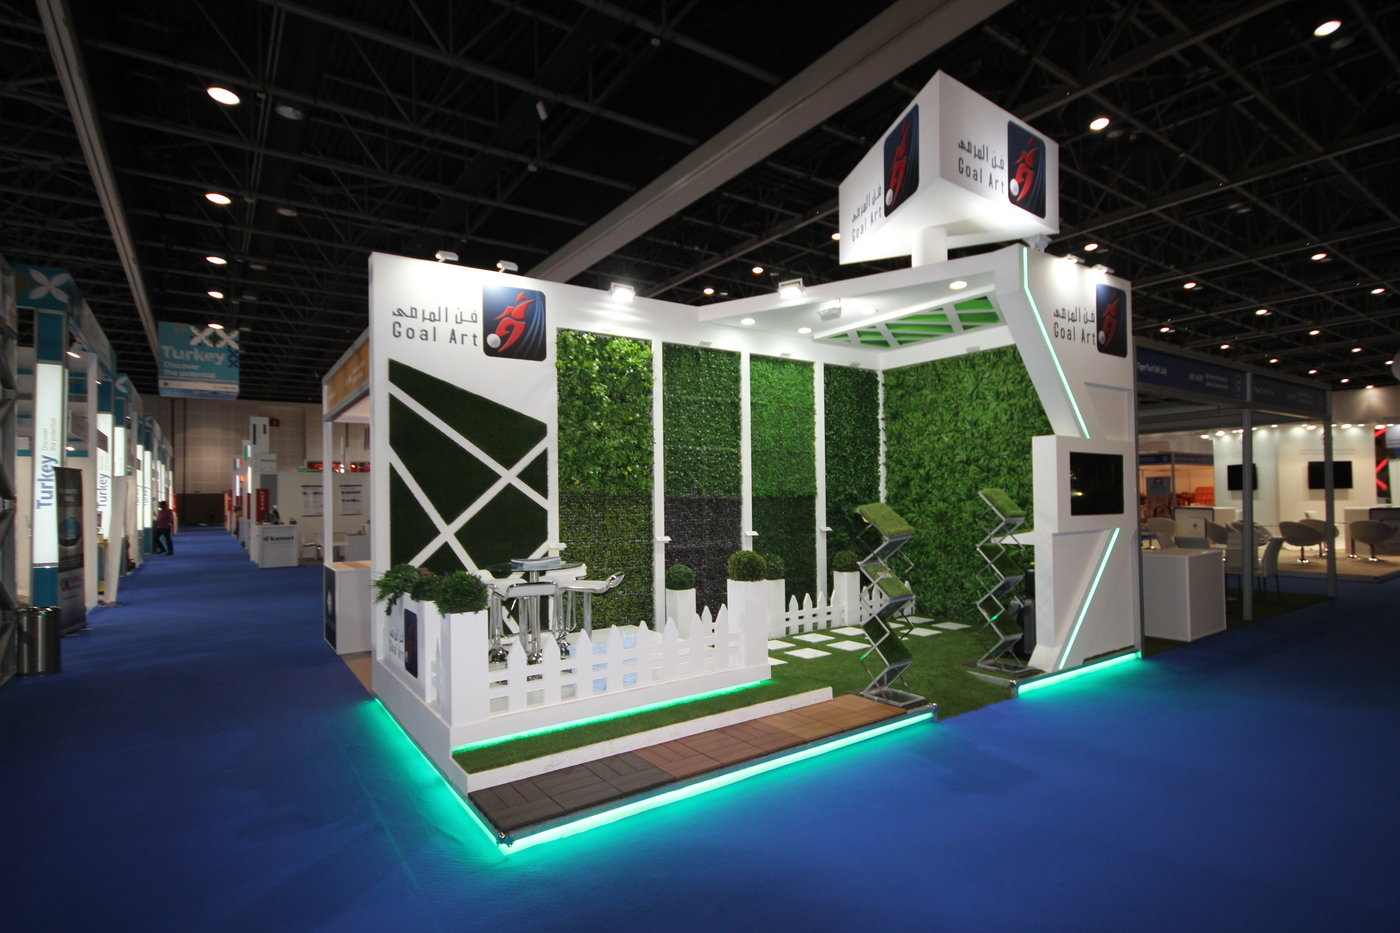 Exhibition Stand Designer Jobs In Dubai : Exhibition stands by sippy jose at coroflot